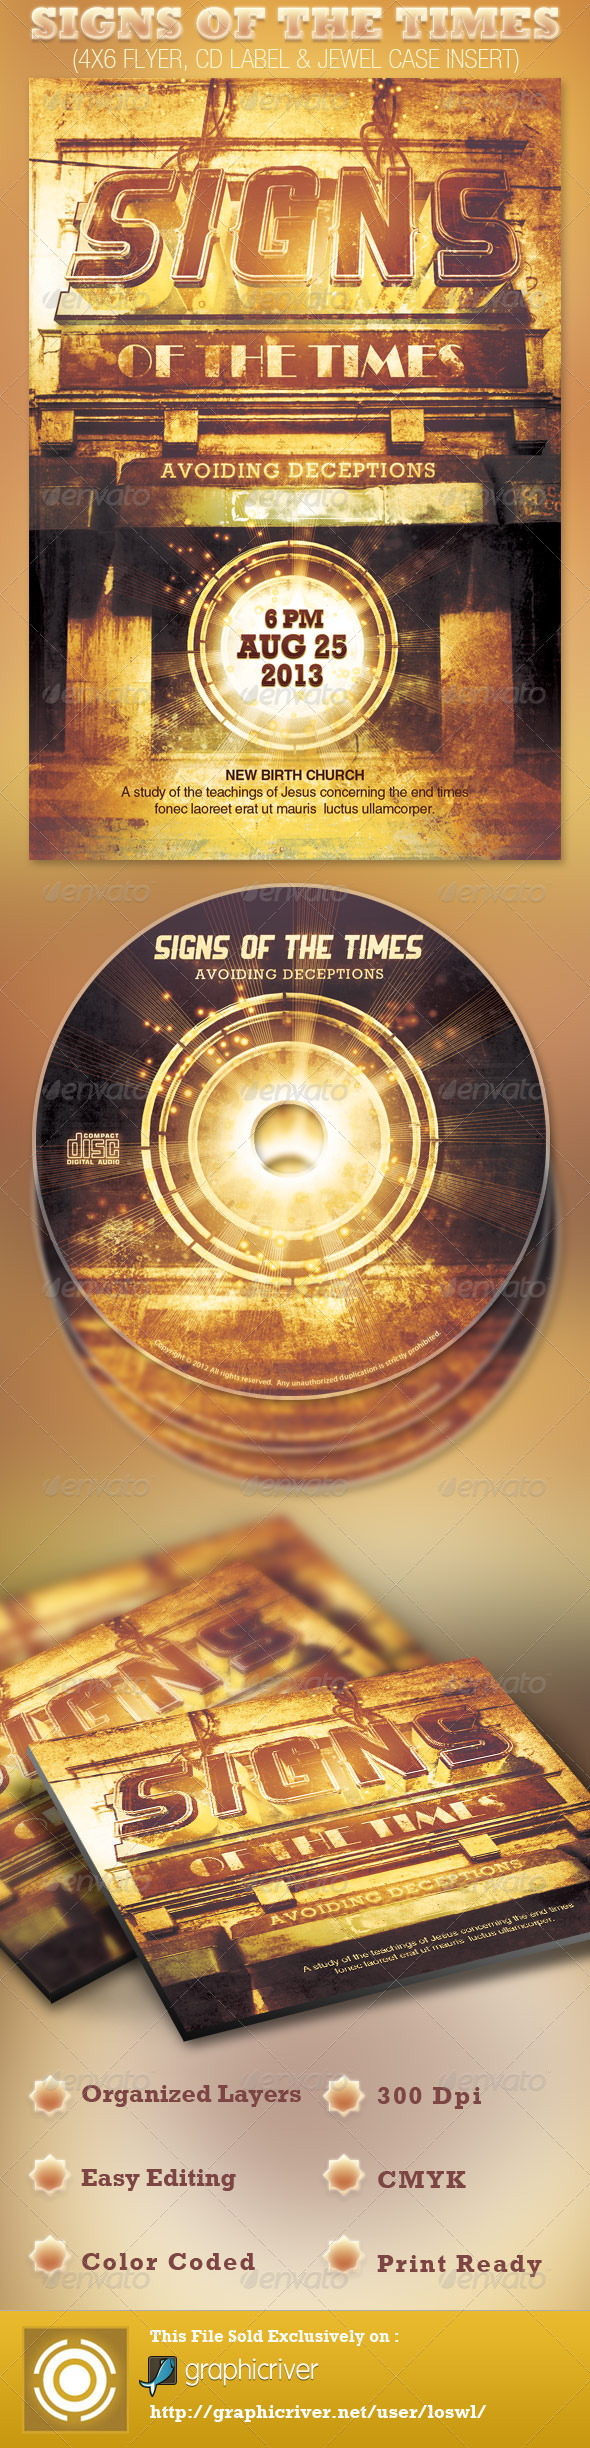 Signs of the Times Church Flyer and CD Template - Church Flyers